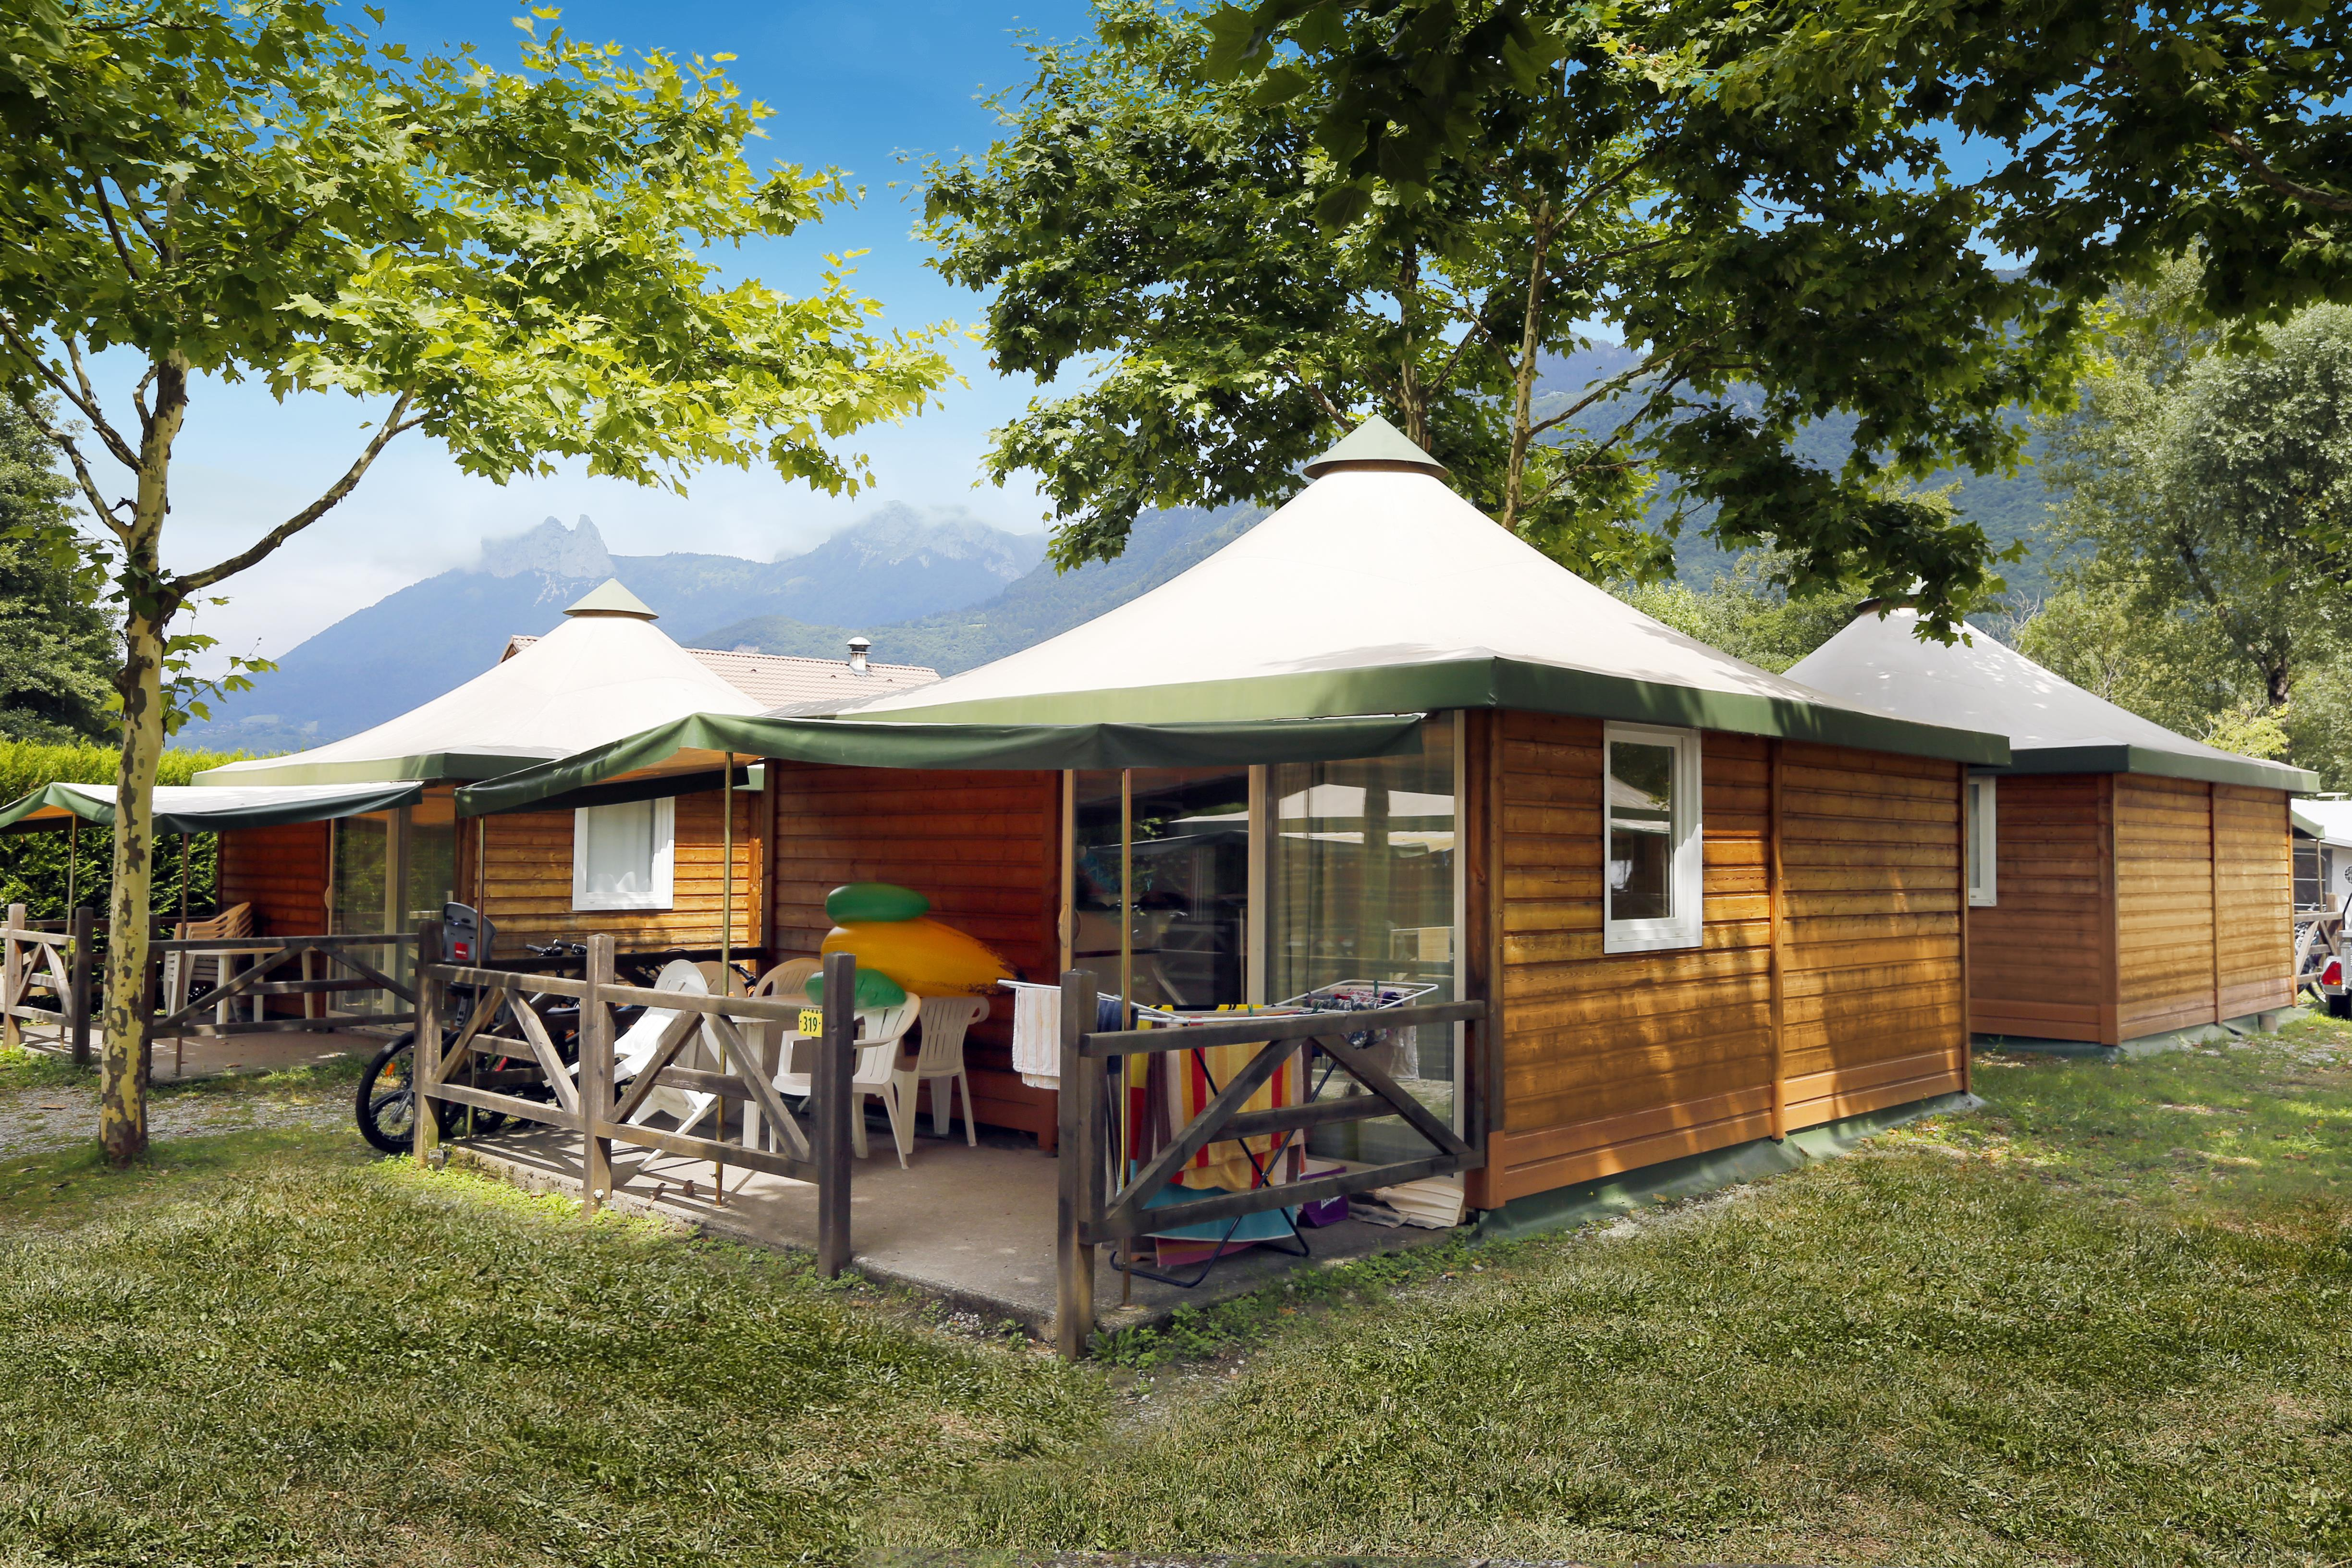 Location - Chalet 2 Chambres - Camping Campéole Clairefontaine